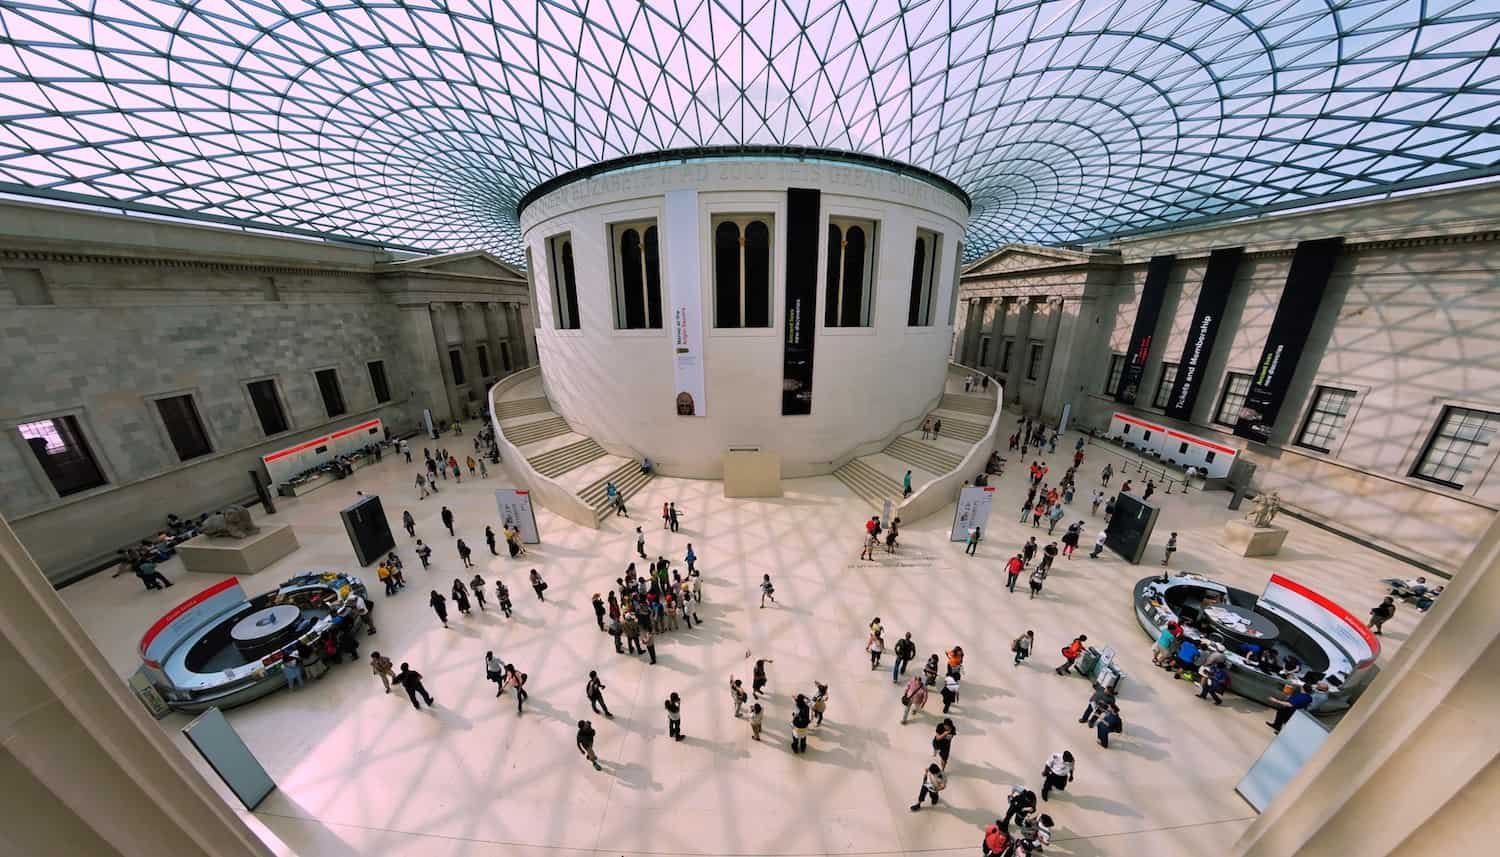 British Museum Foyer